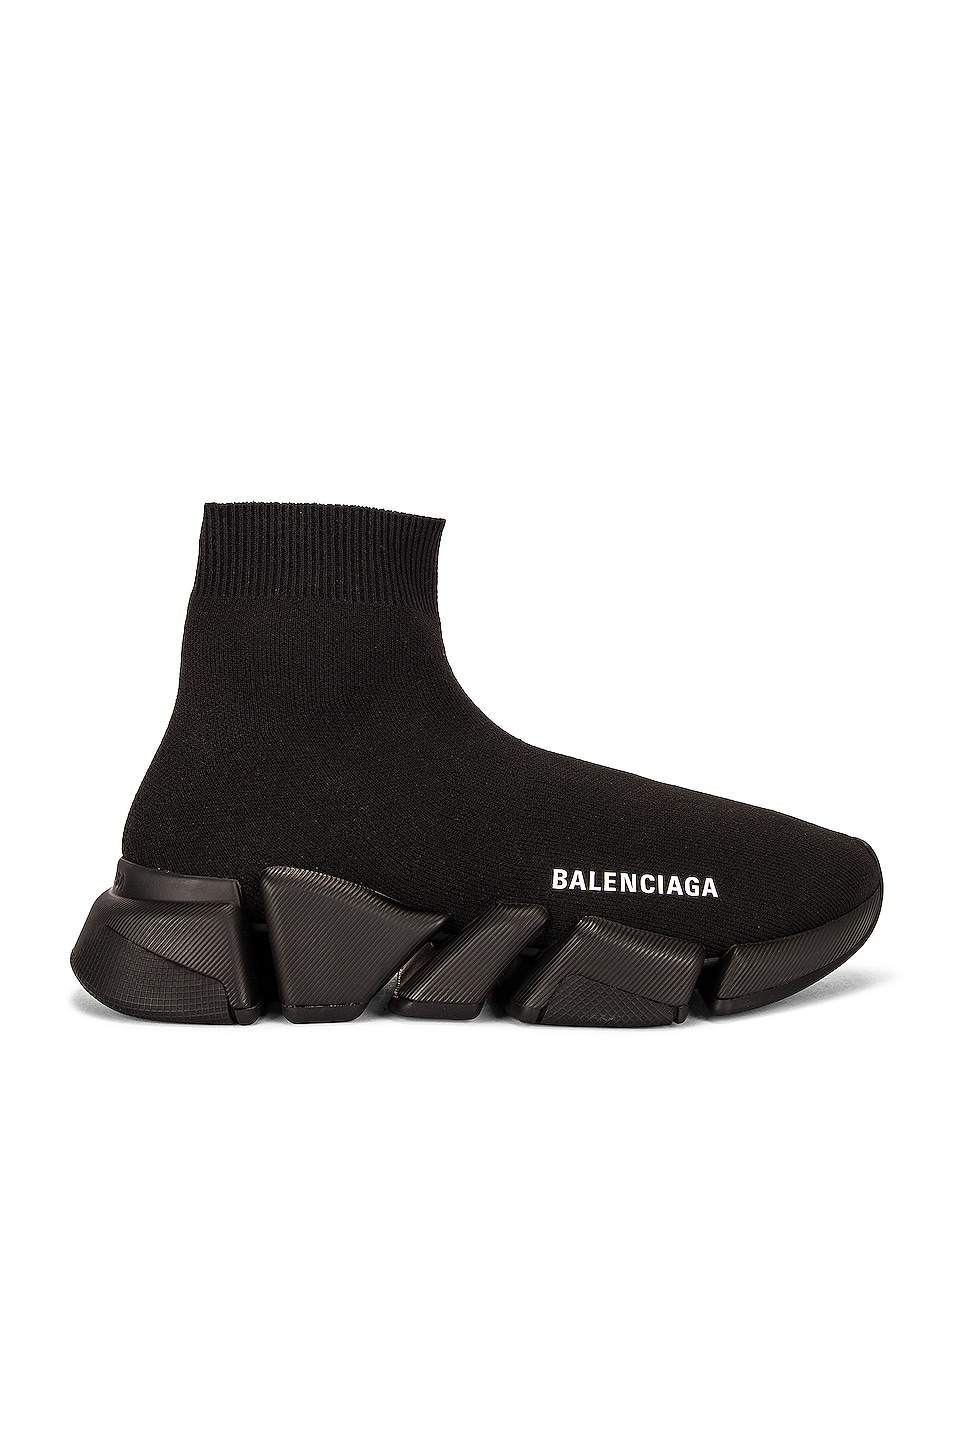 Image 1 of Balenciaga Speed Light Sneakers in Black & Black & Black